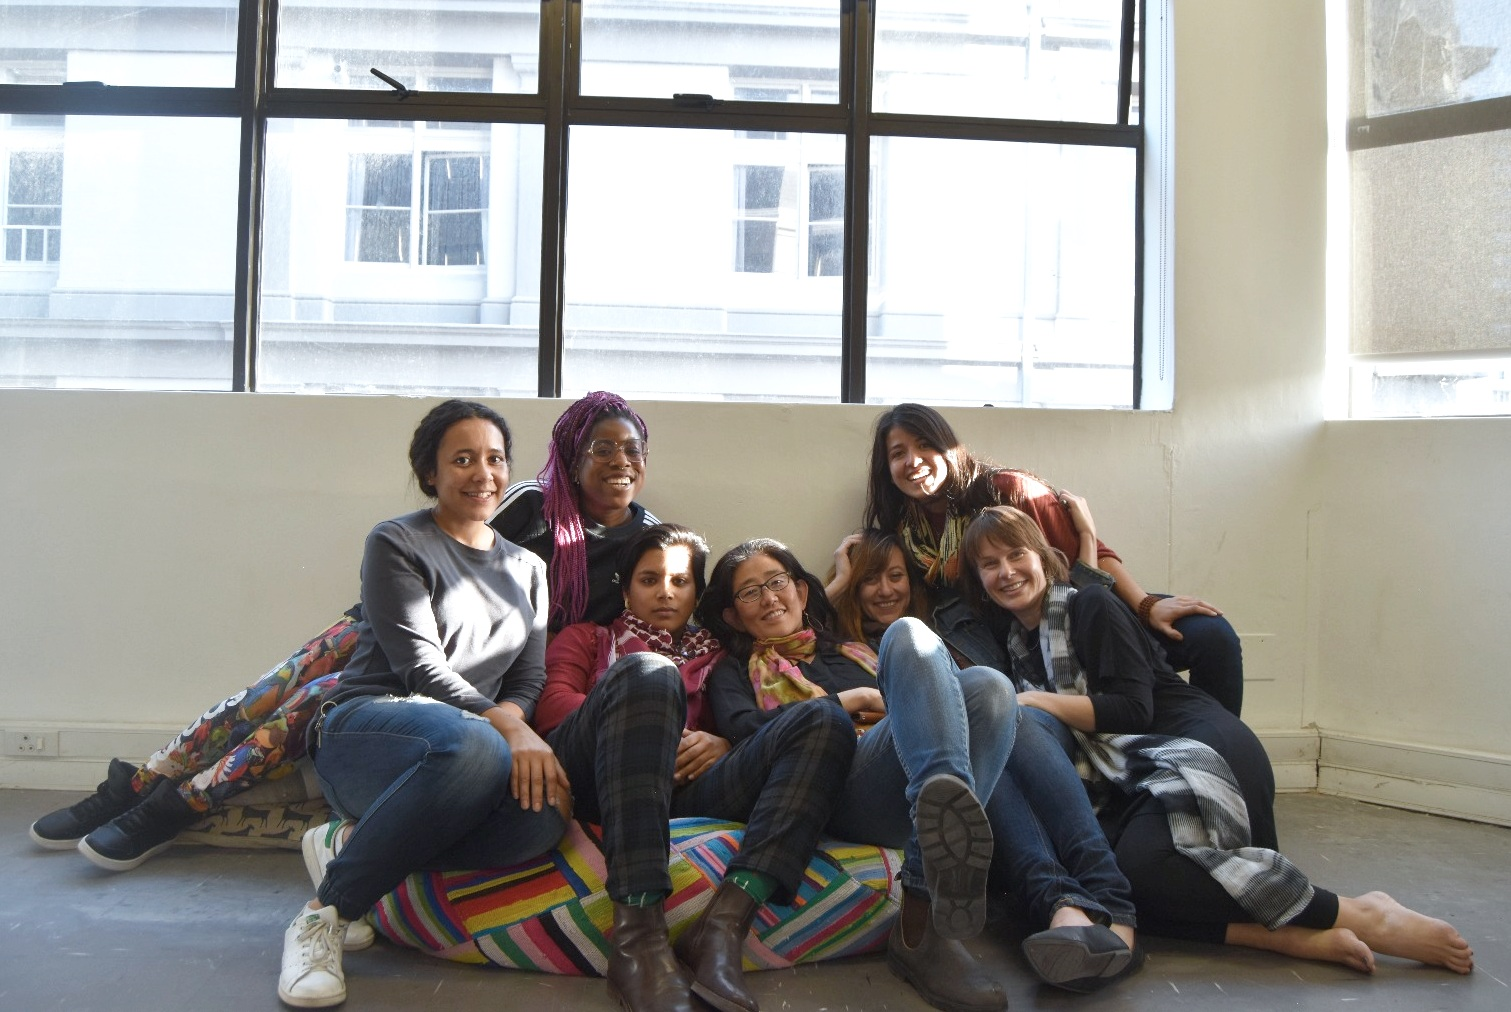 The Cape Town UnSchool team (pictured from left, Andi, Vanessa, Wisaal, Vicky, myself, Camila and Thessa).